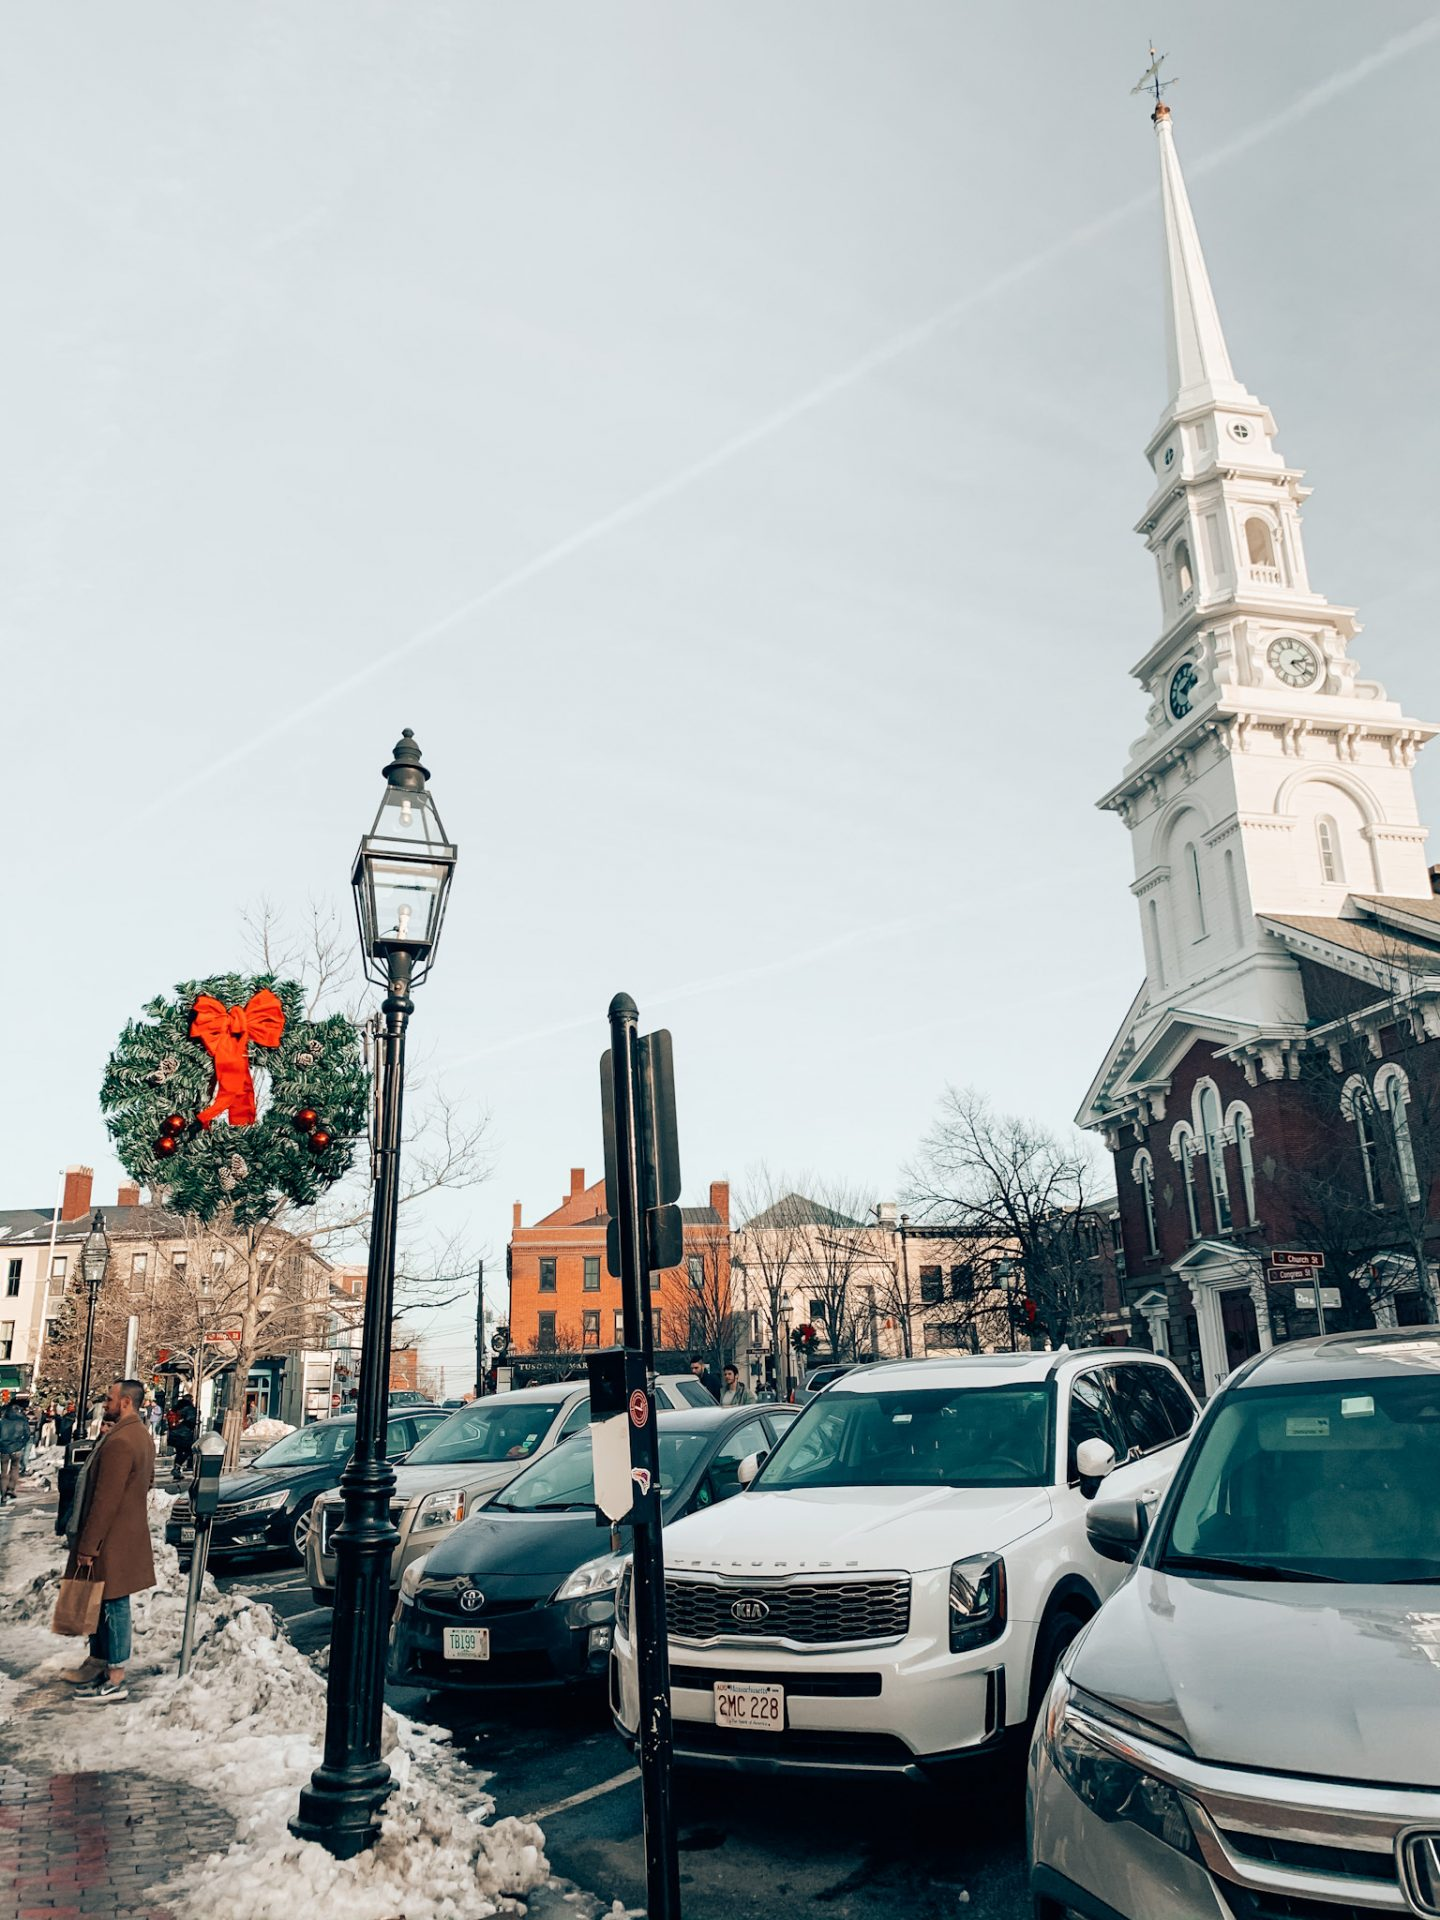 Portsmouth's North Church & Market Square during the holiday season